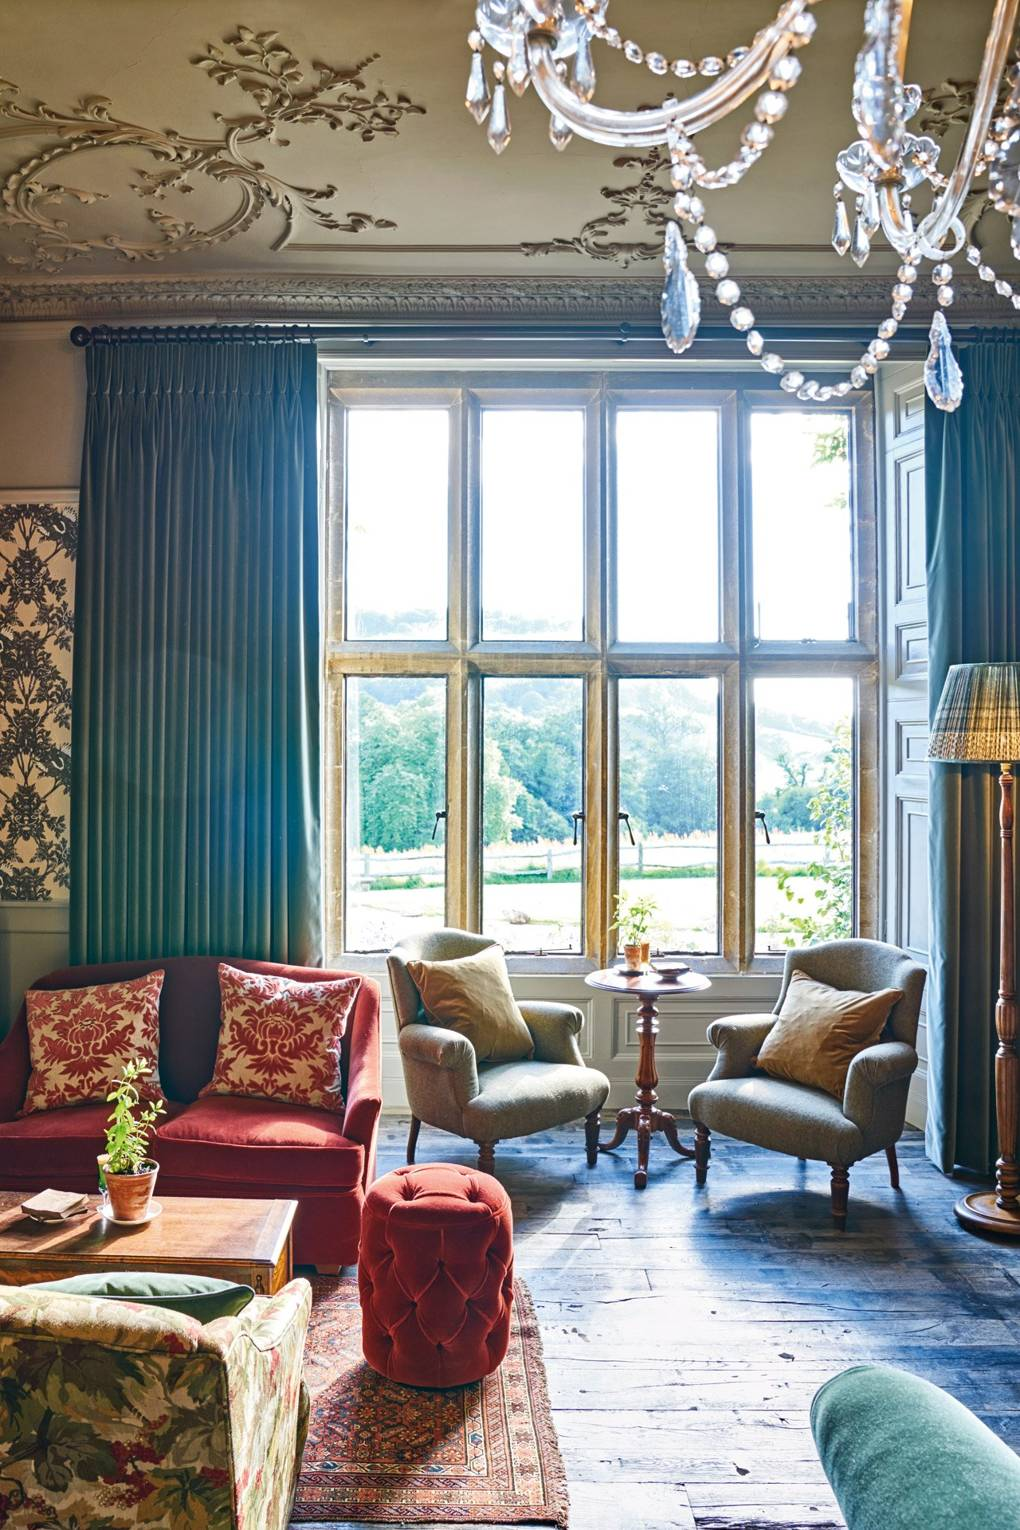 drawing-room-at-the-pig-at-combe-hotel-devon-conde-nast-traveller-18oct16-james-merrell.jpg